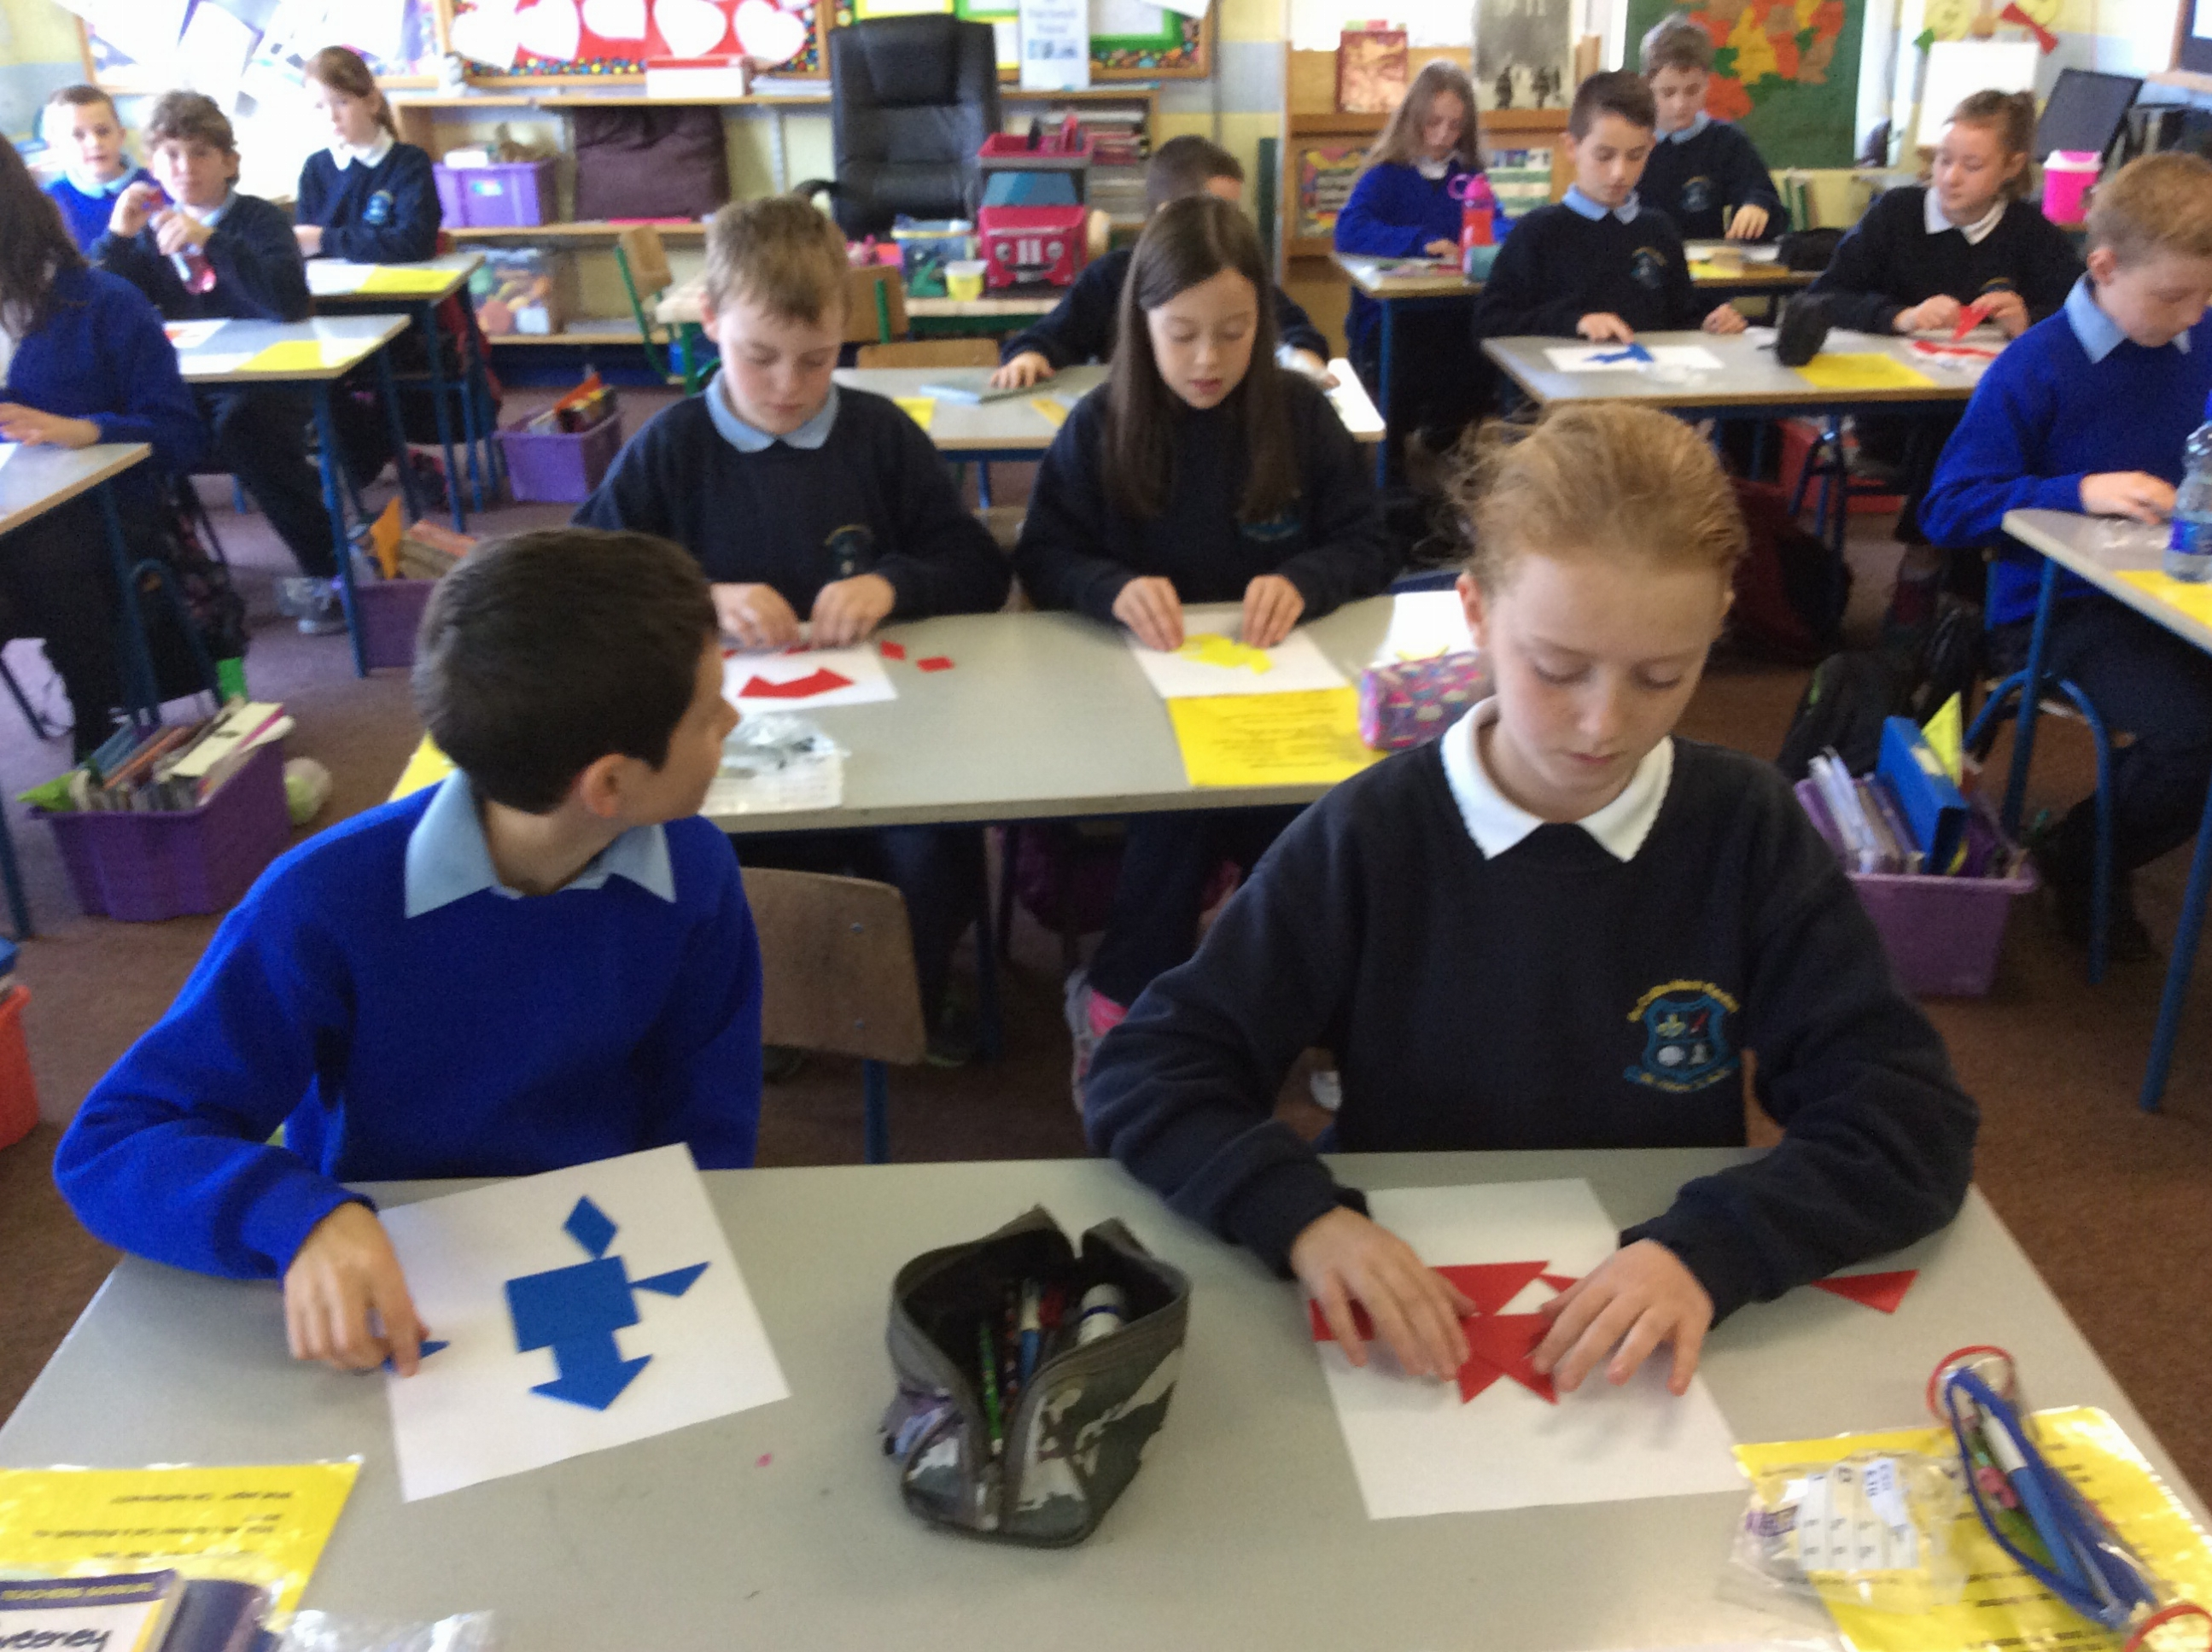 Working with tangrams